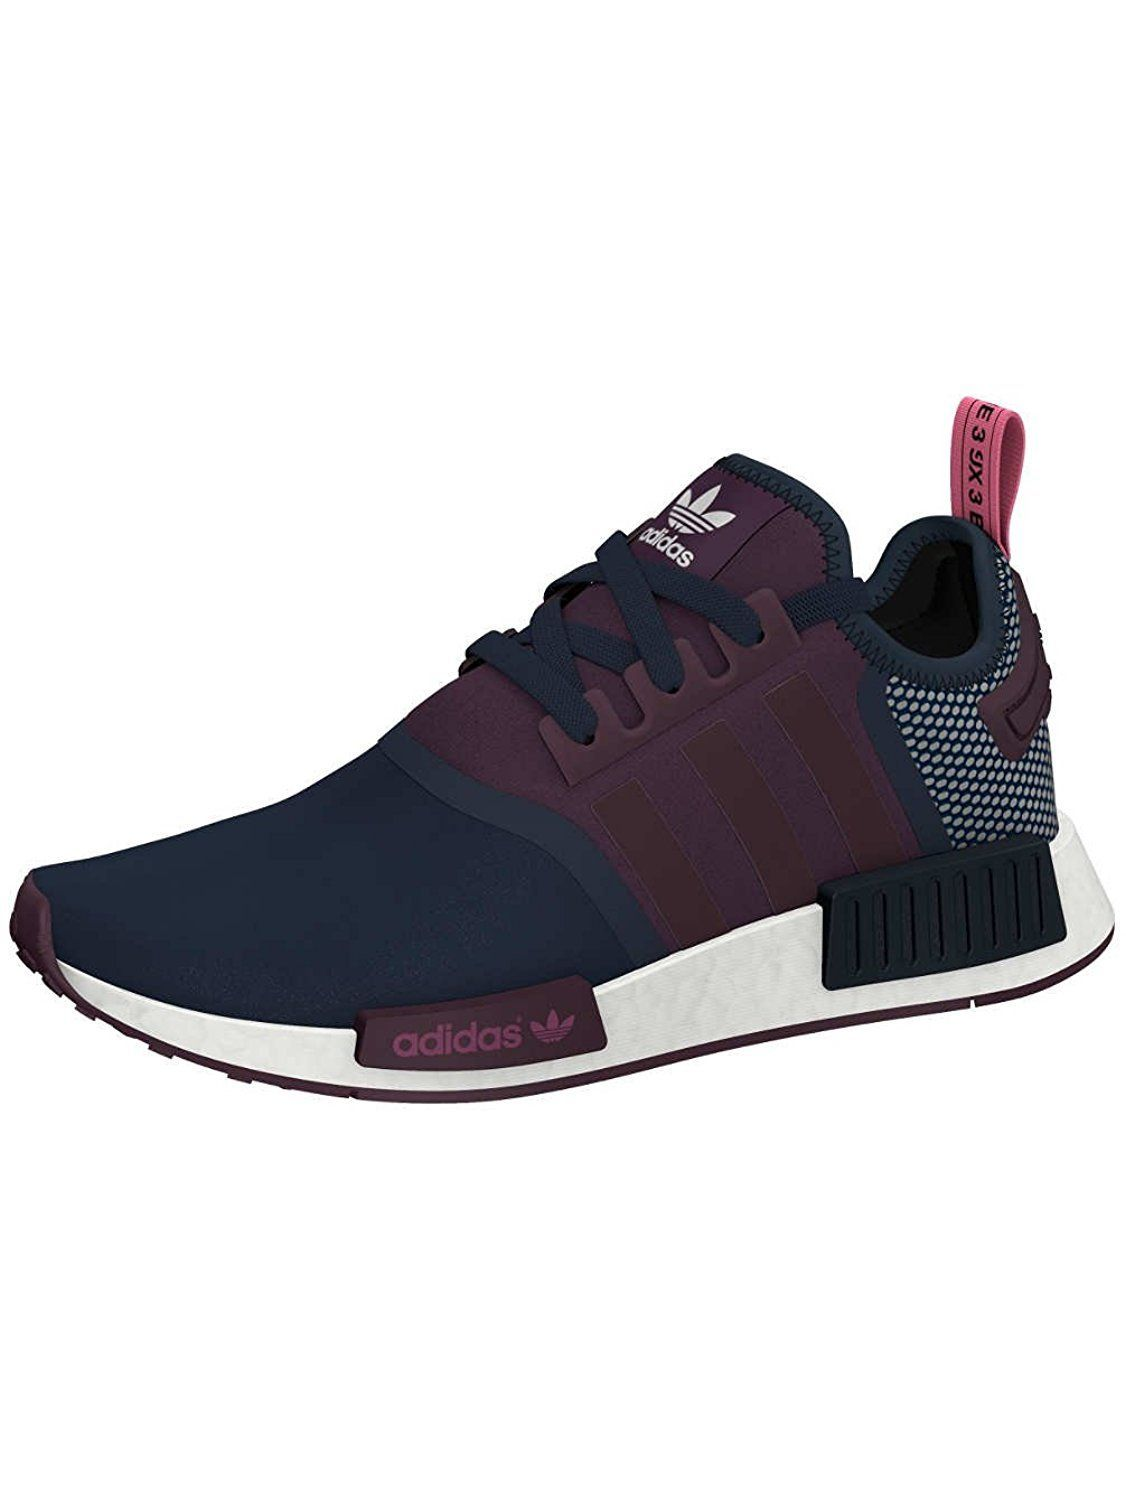 excellent quality the sale of shoes new product Damen Sneaker adidas Originals NMD Runner Sneakers Women ...